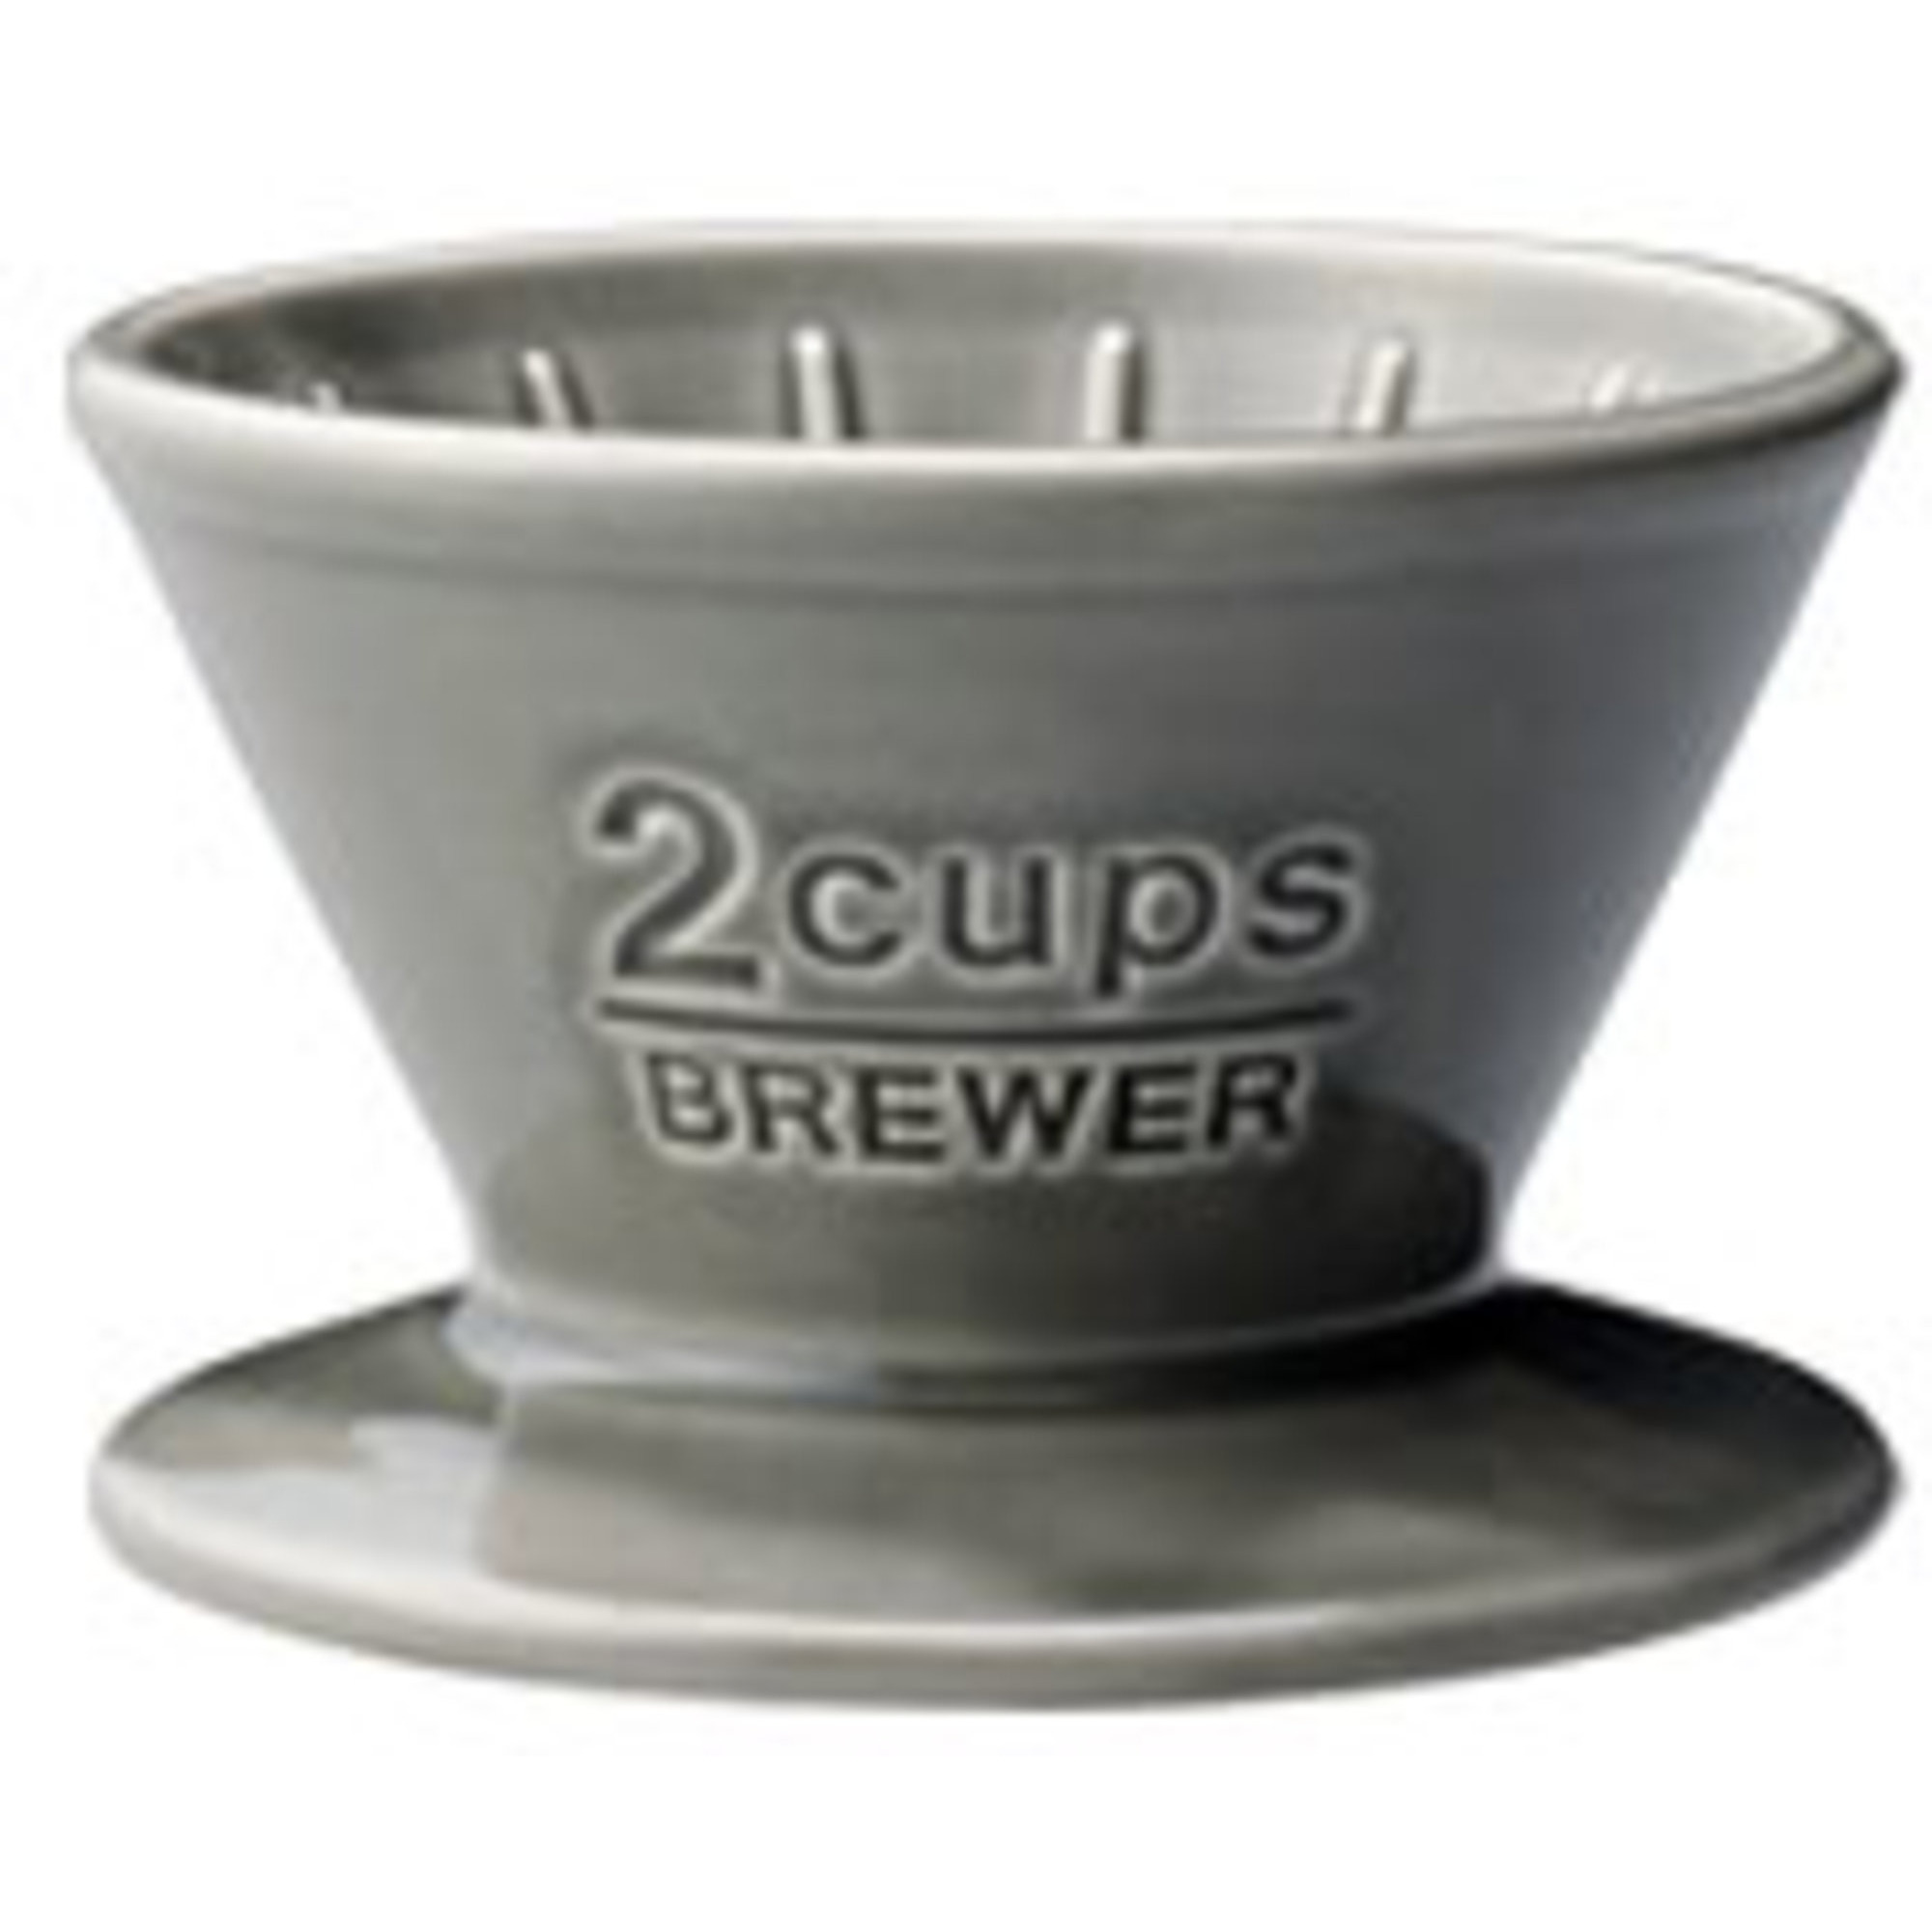 Kinto SCS-02-BR brewer 2cups gray